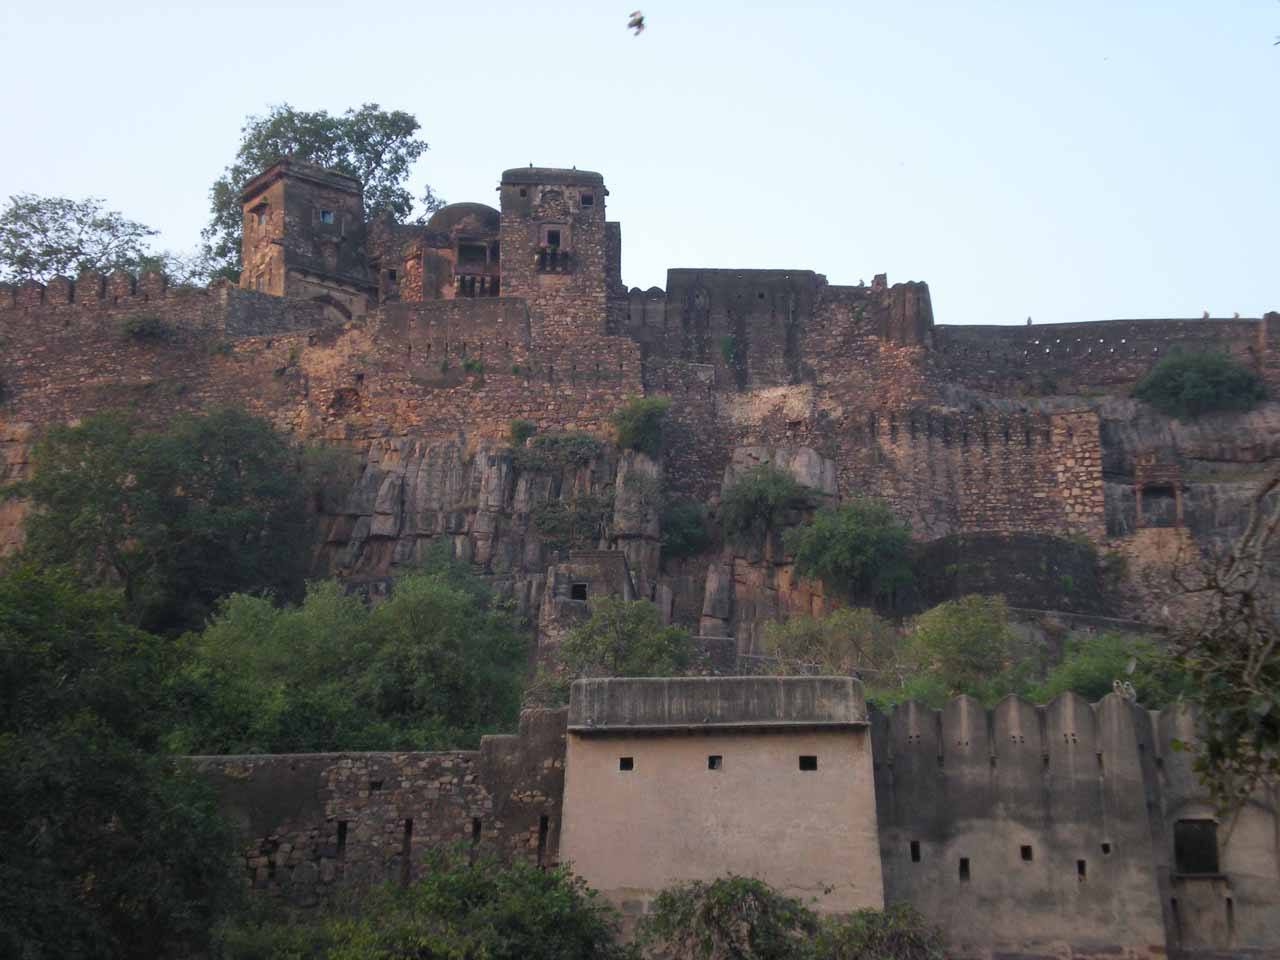 The front of Ranthambore Fort